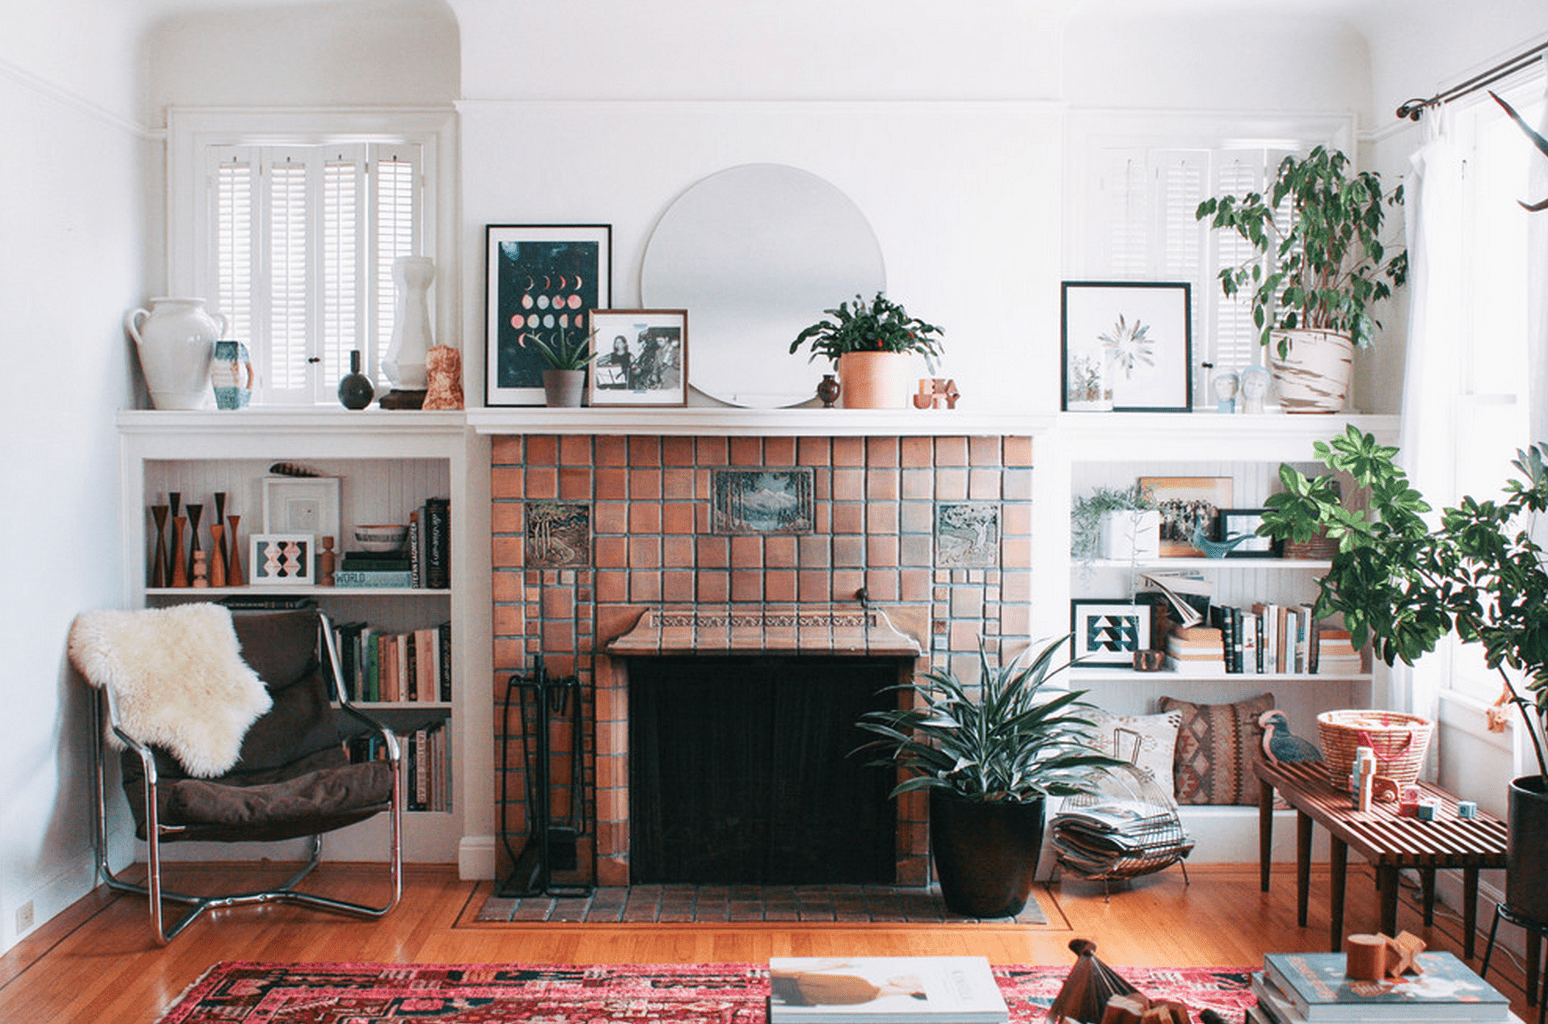 Clay tile fireplace in an airy living room